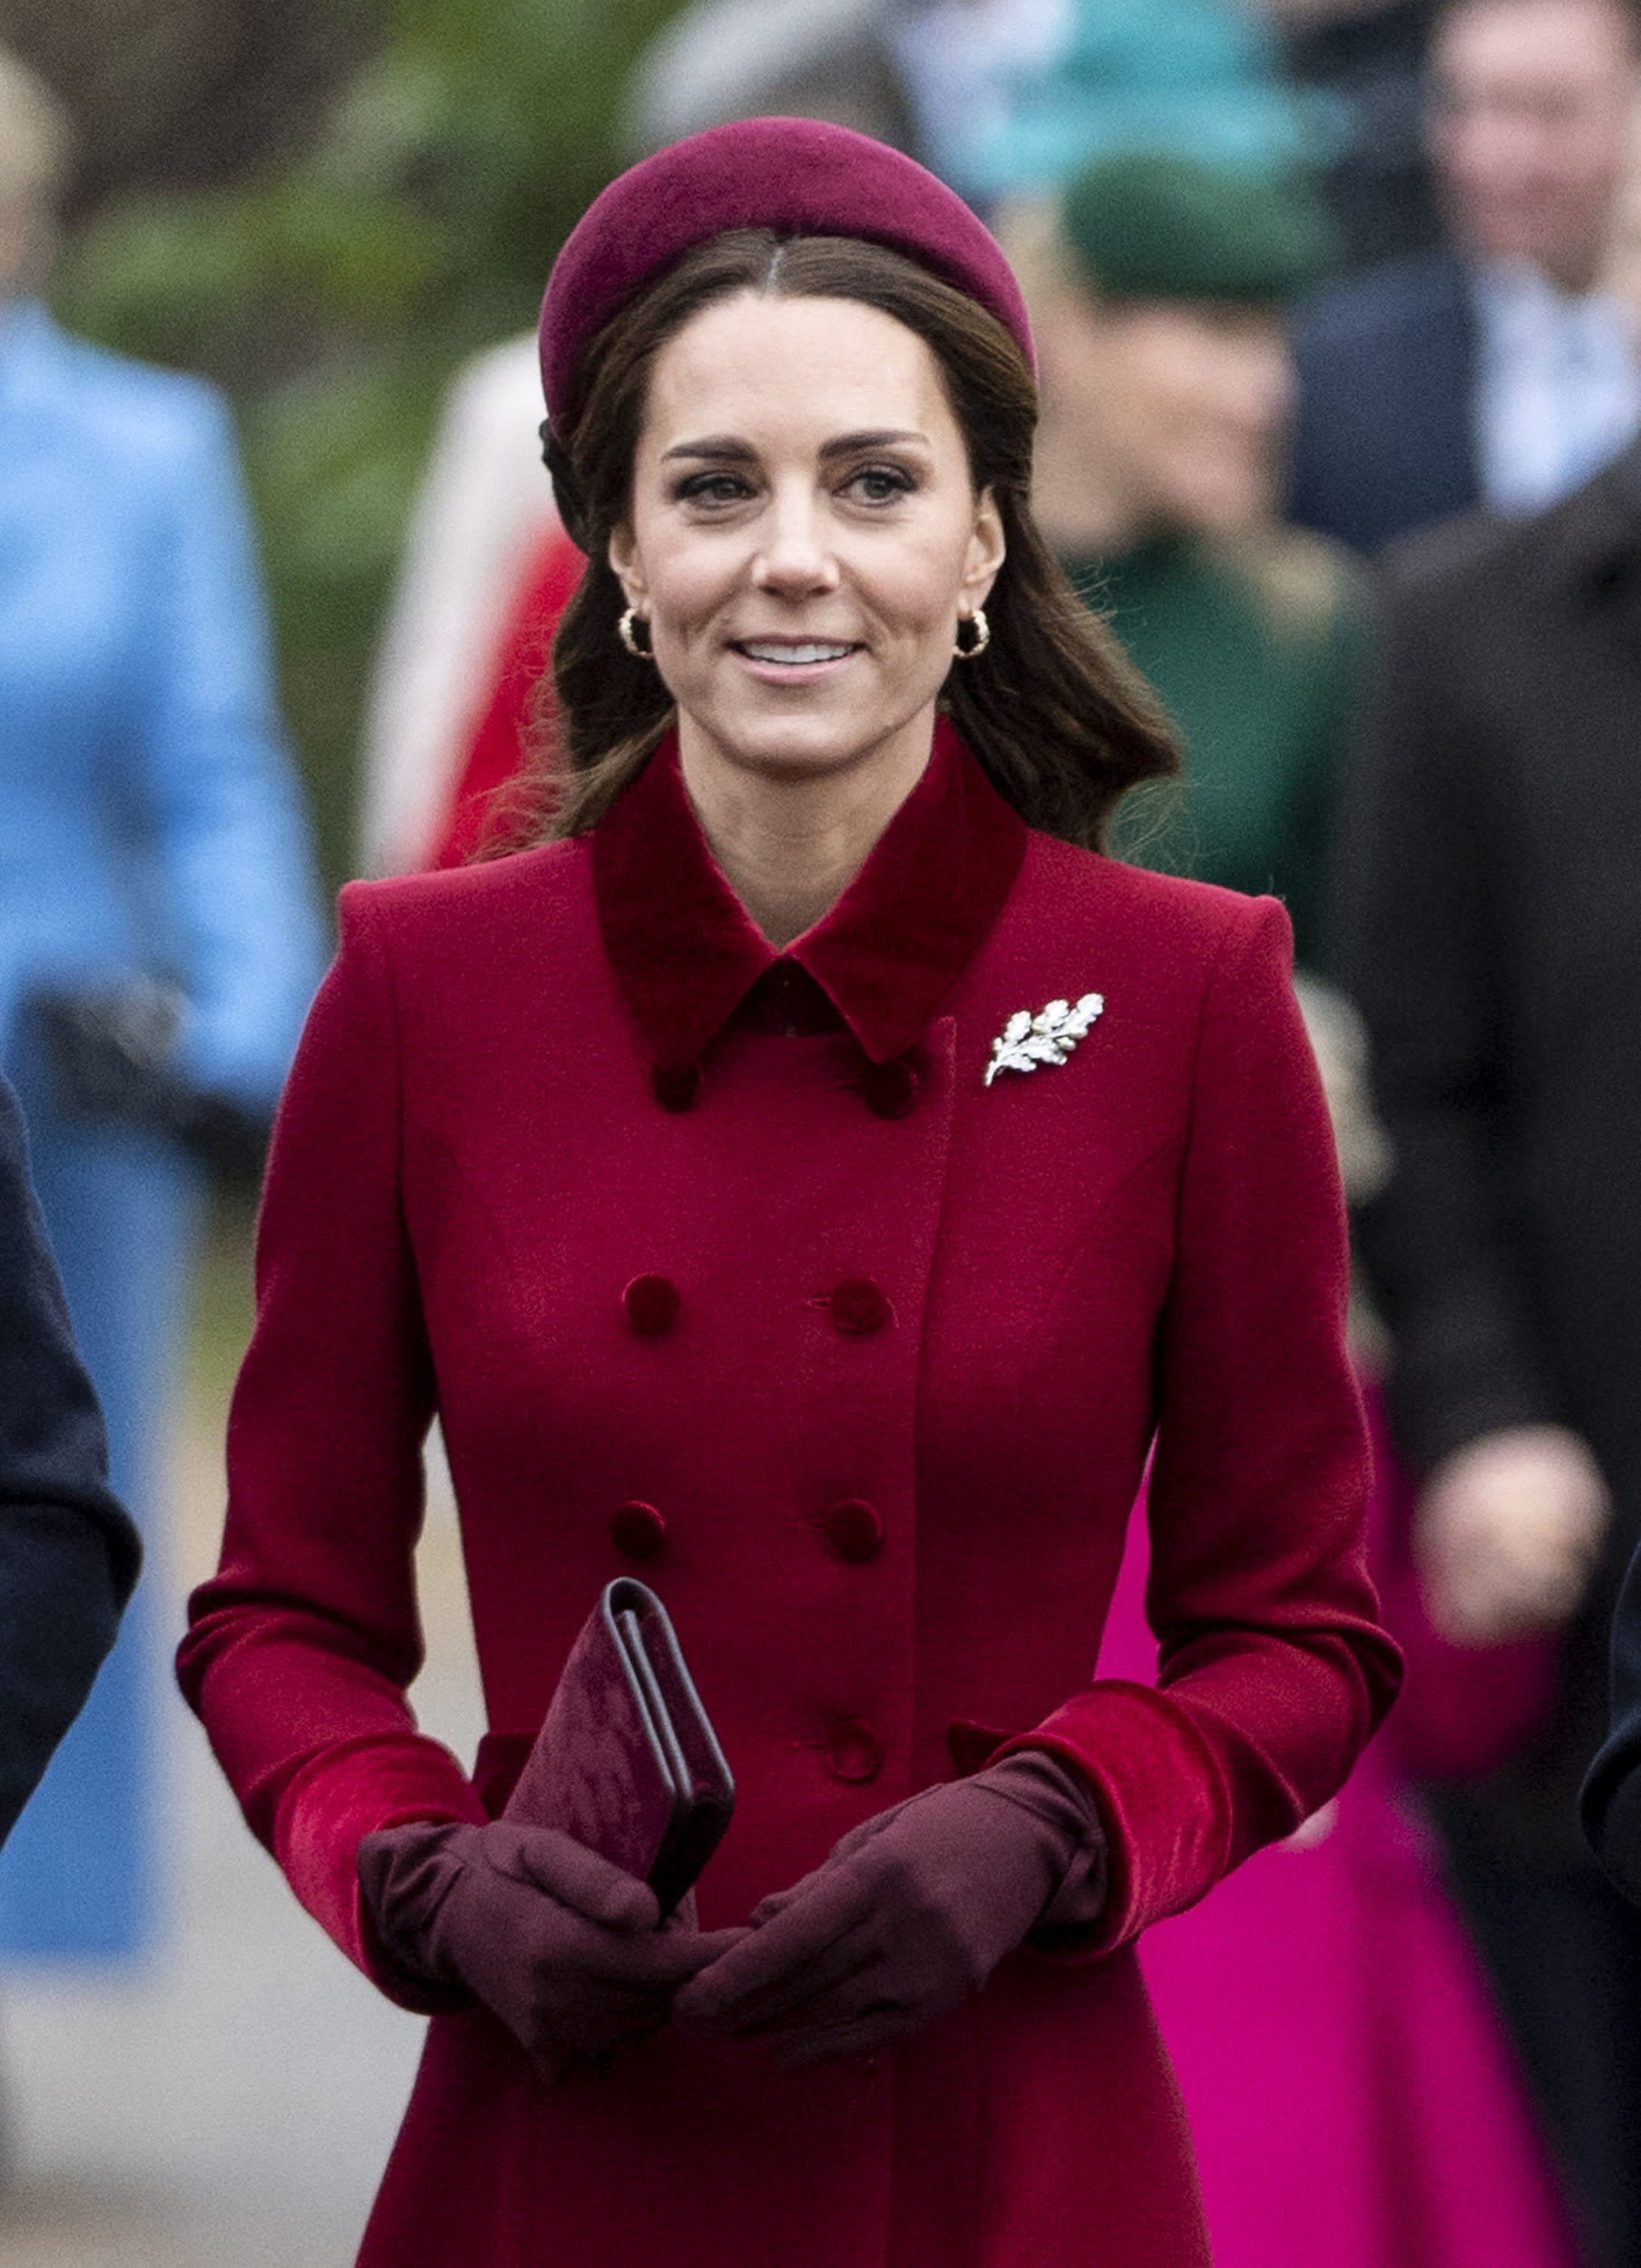 KING'S LYNN, ENGLAND - DECEMBER 25: Catherine, Duchess of Cambridge attend Christmas Day Church service at Church of St Mary Magdalene on the Sandringham estate on December 25, 2018 in King's Lynn, England. (Photo by Mark Cuthbert/UK Press via Getty Images)